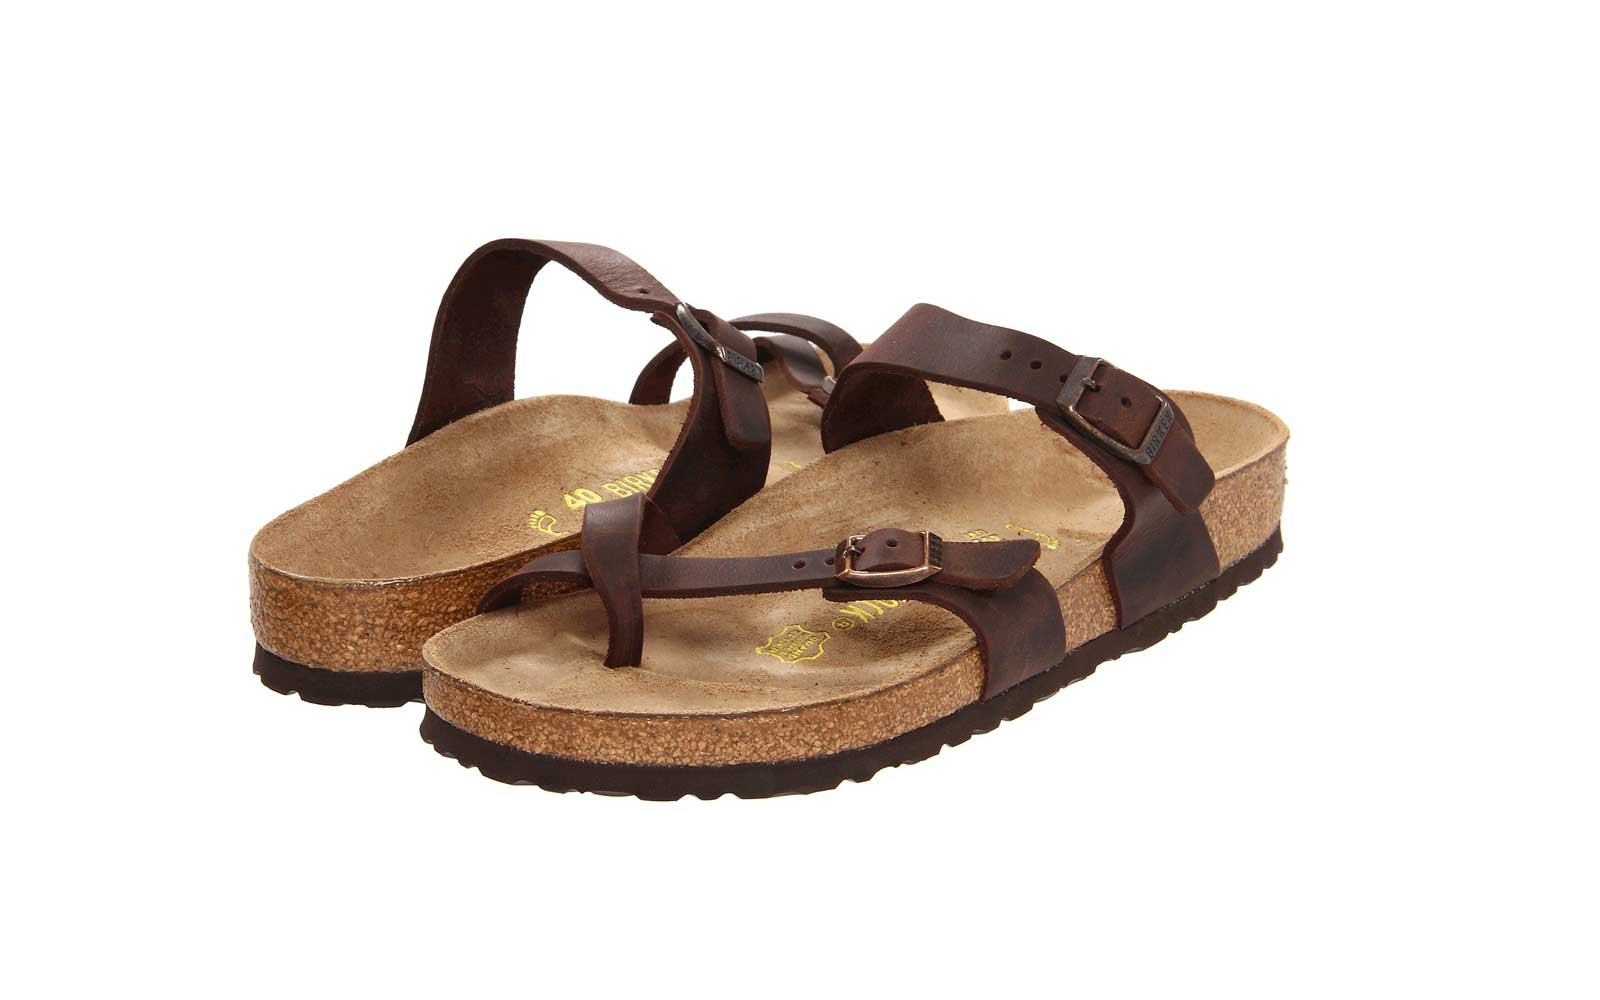 f9b2435188c The Most Comfortable Walking Sandals for Women